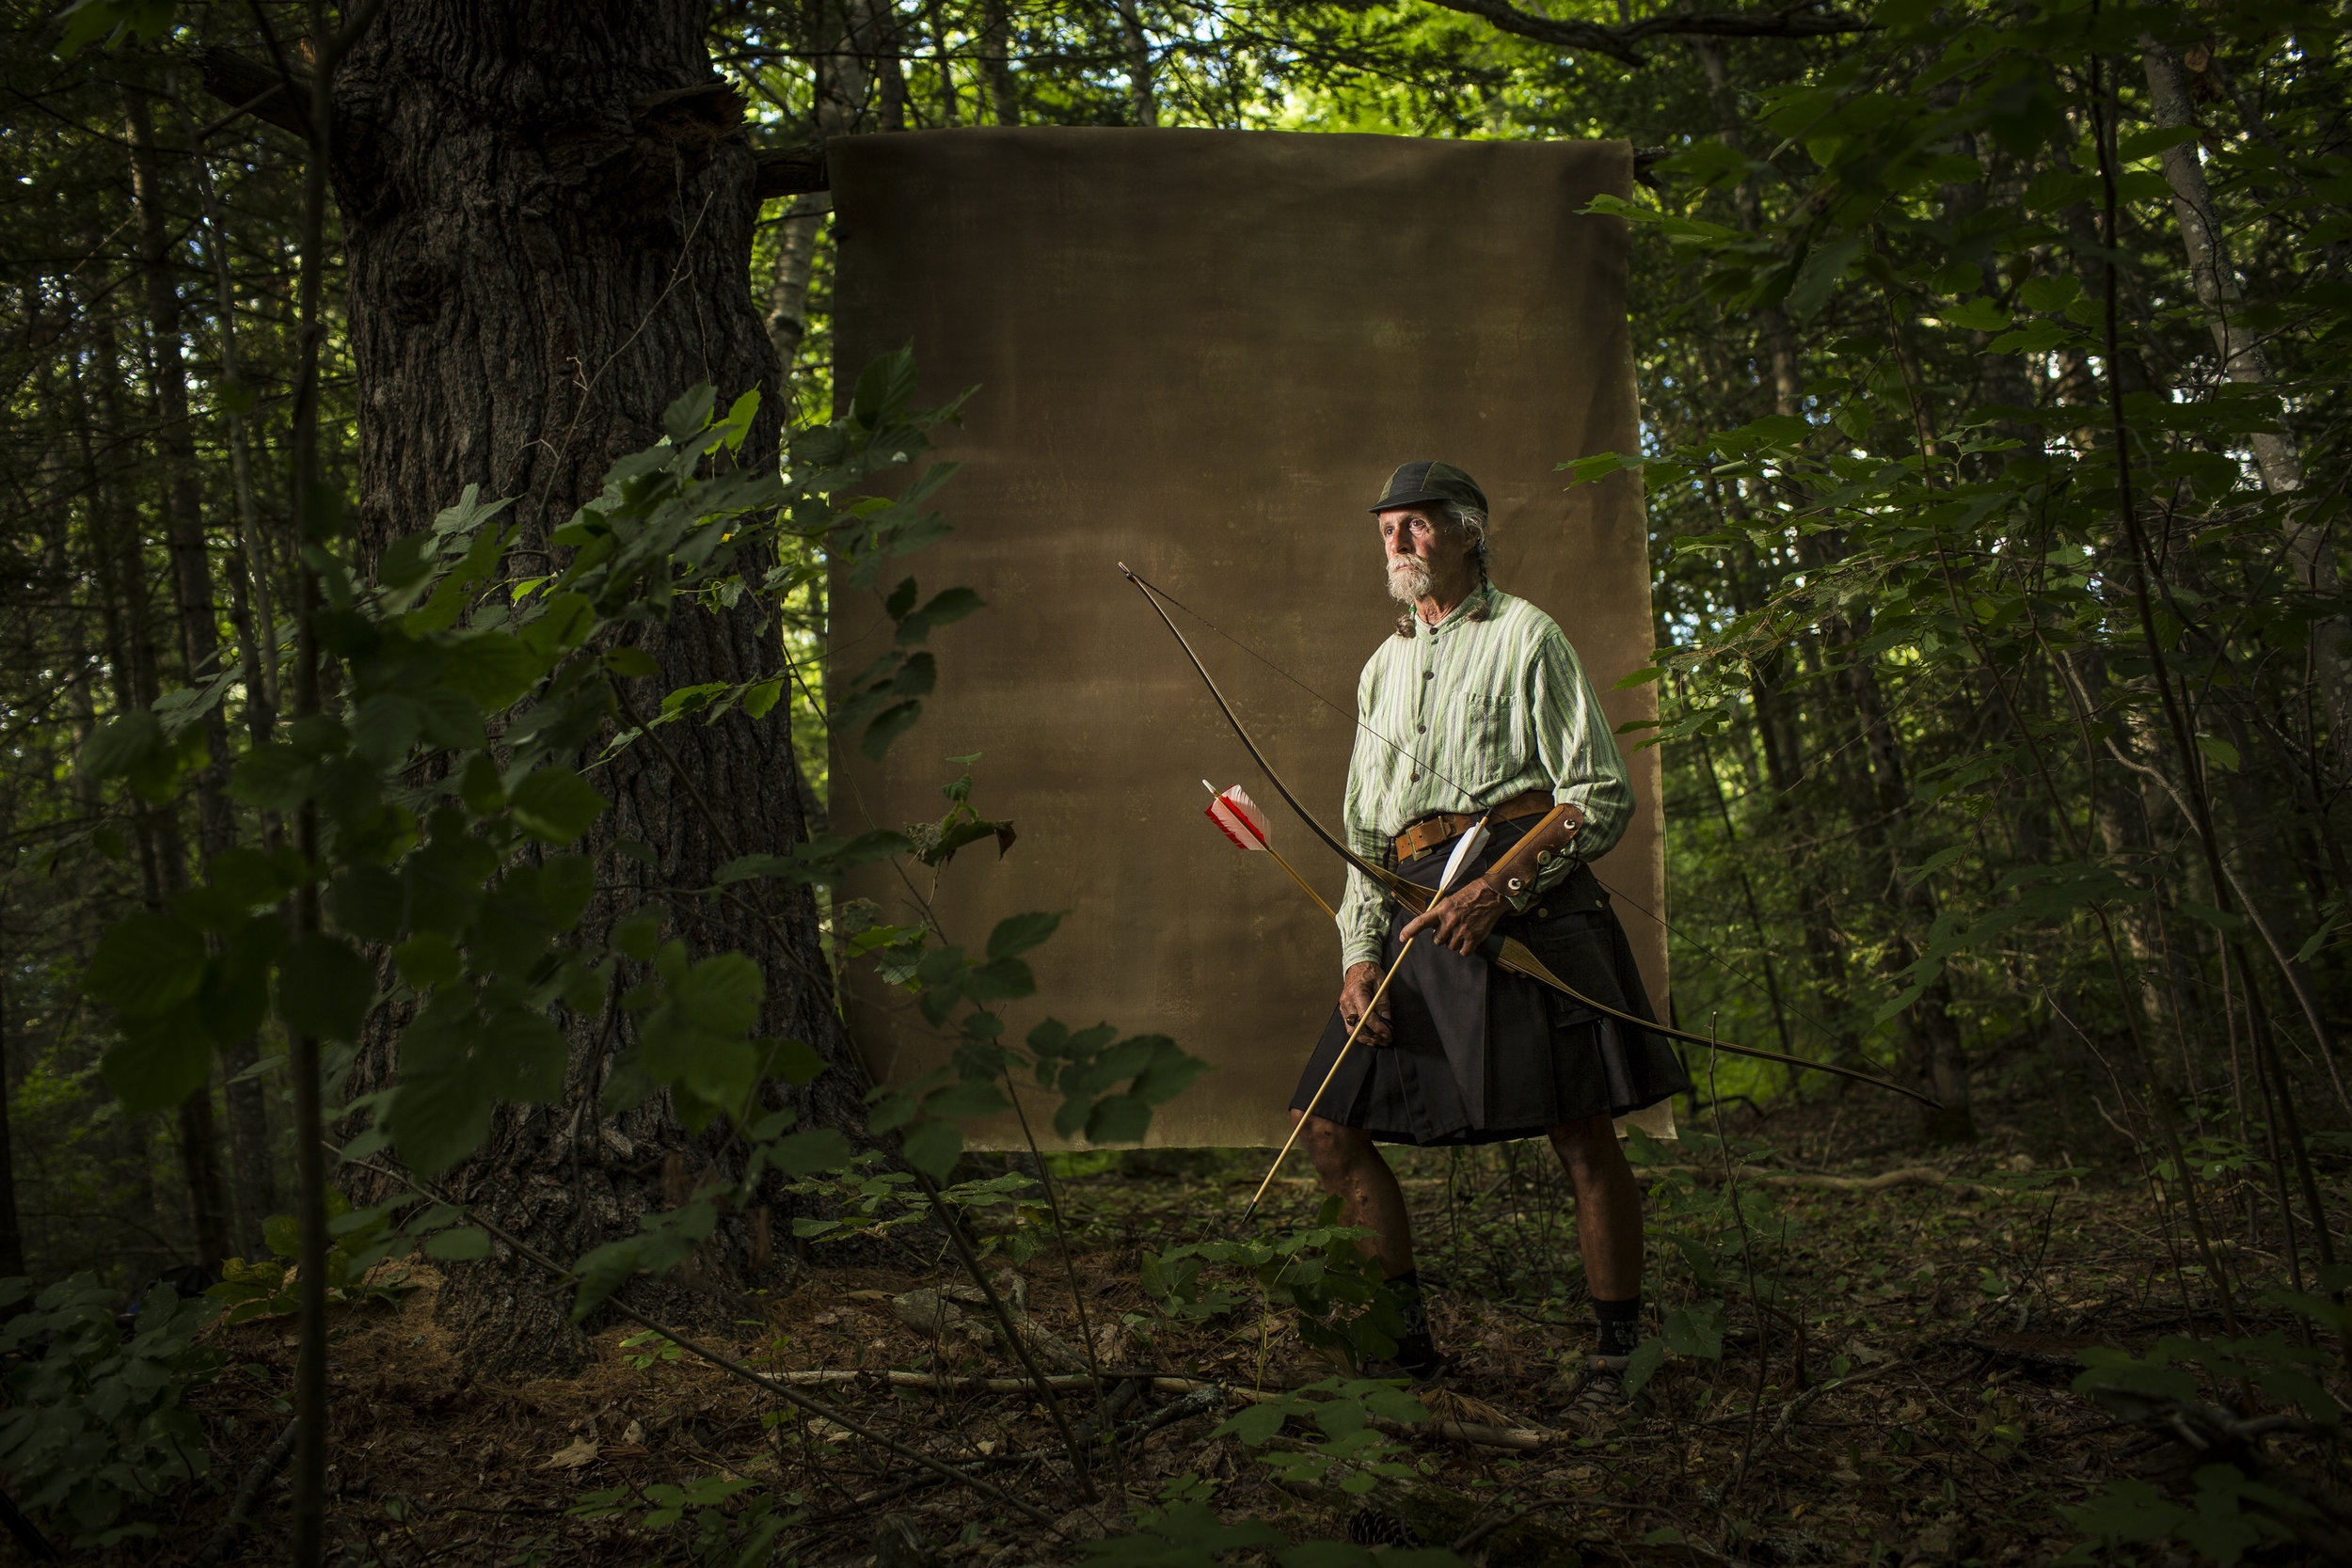 Avid outdoorsman, Bob Lombardo, 69, photographed in Orono, Maine. Bob spends much of his time on trails, either out working on target practice shooting rotten tree stumps with the arrows he makes or on one of his many bikes.